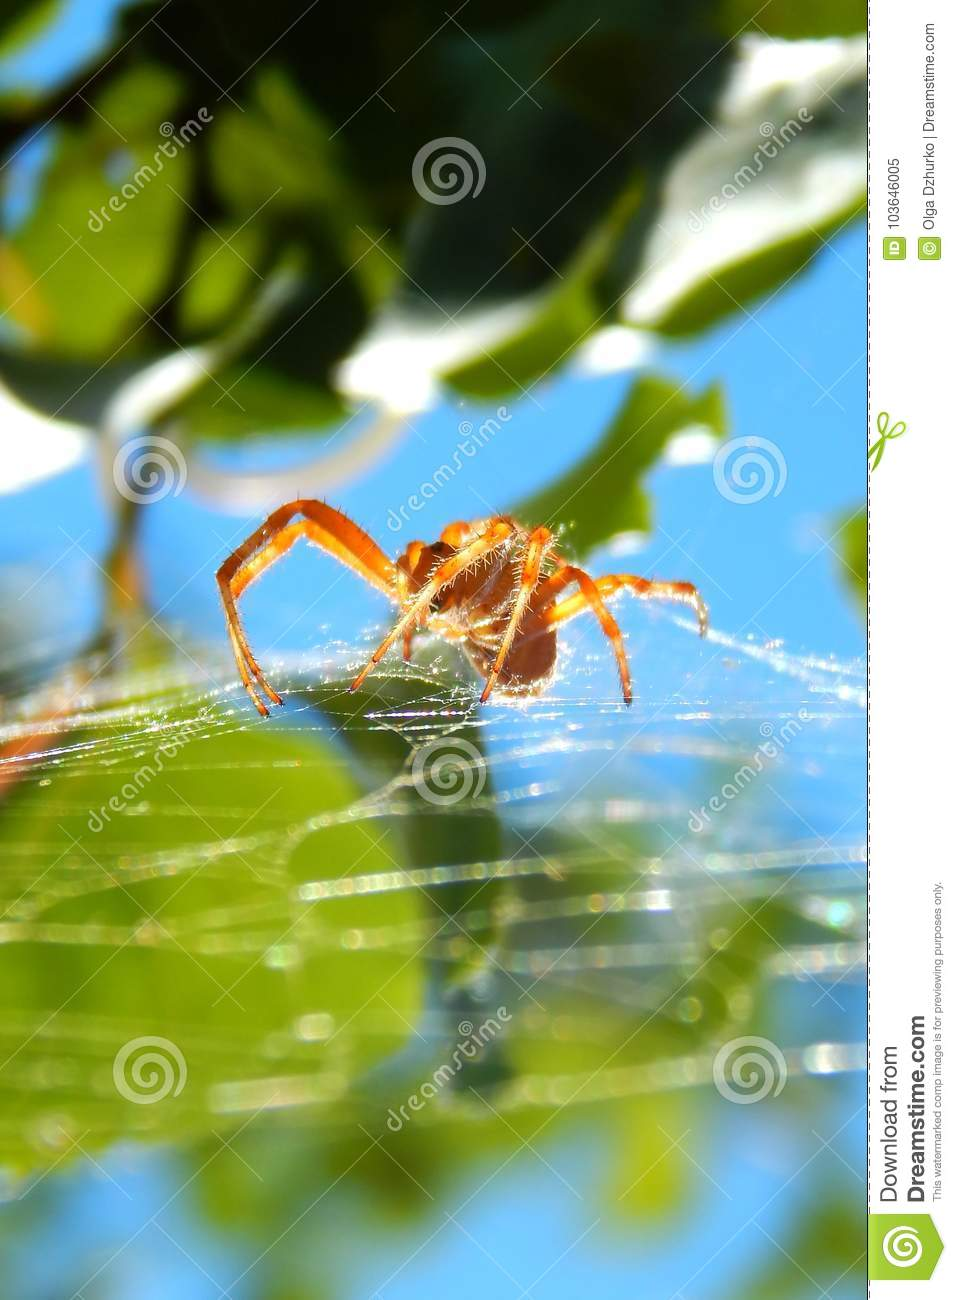 2orange spider on web. on background of green leaves and blue sky